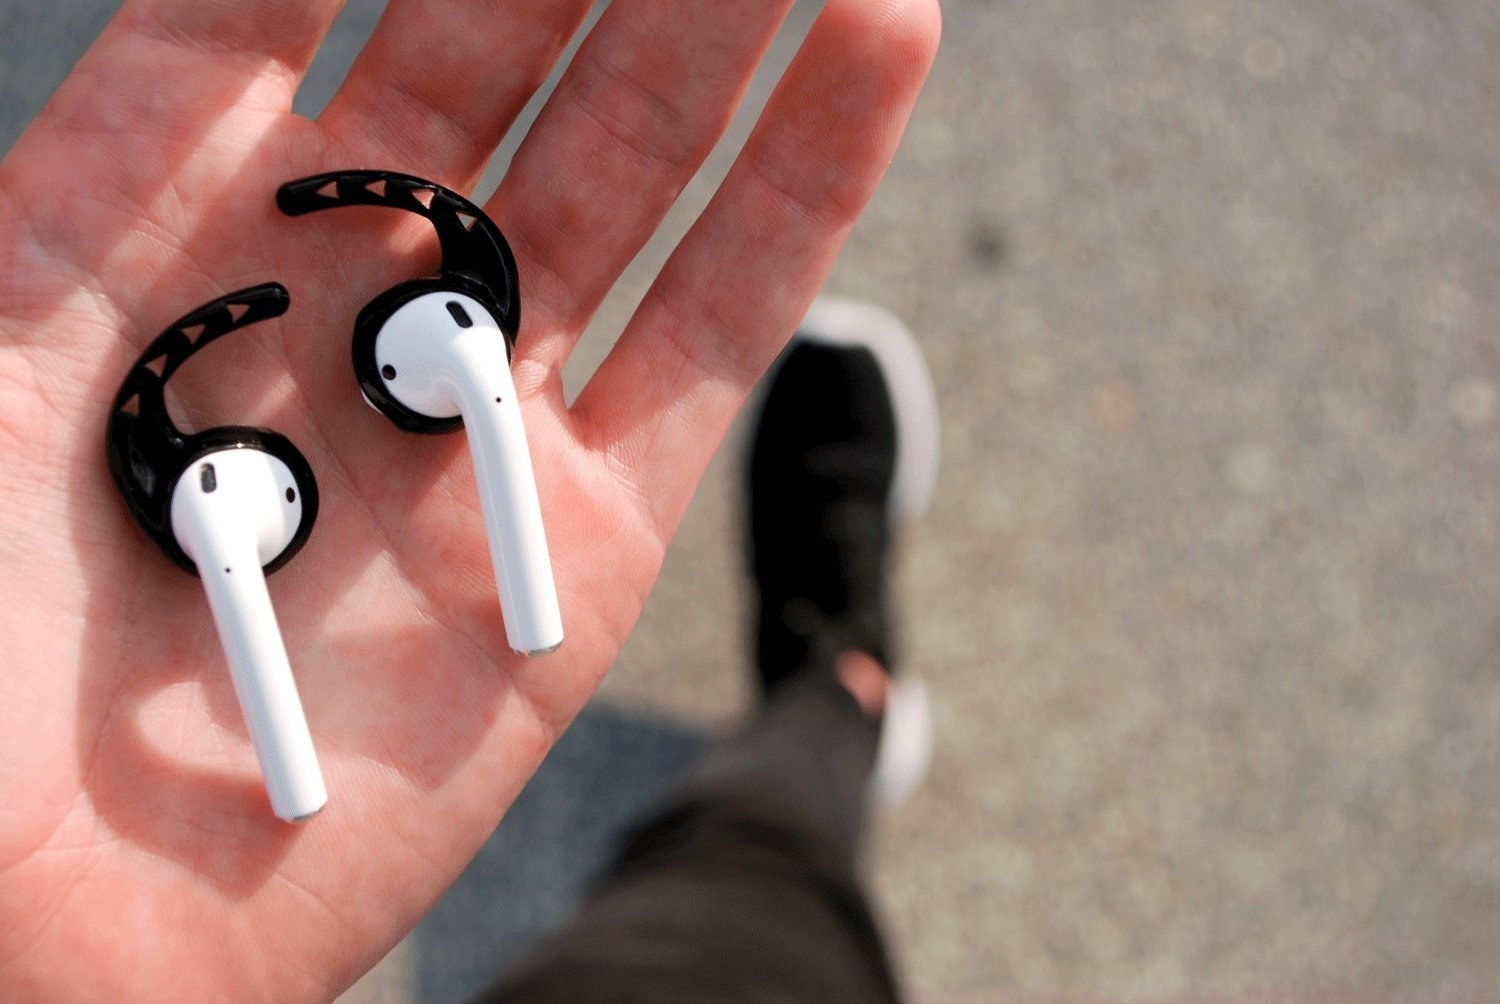 A hand with airpods in them, with the hook-like black silicone attachments